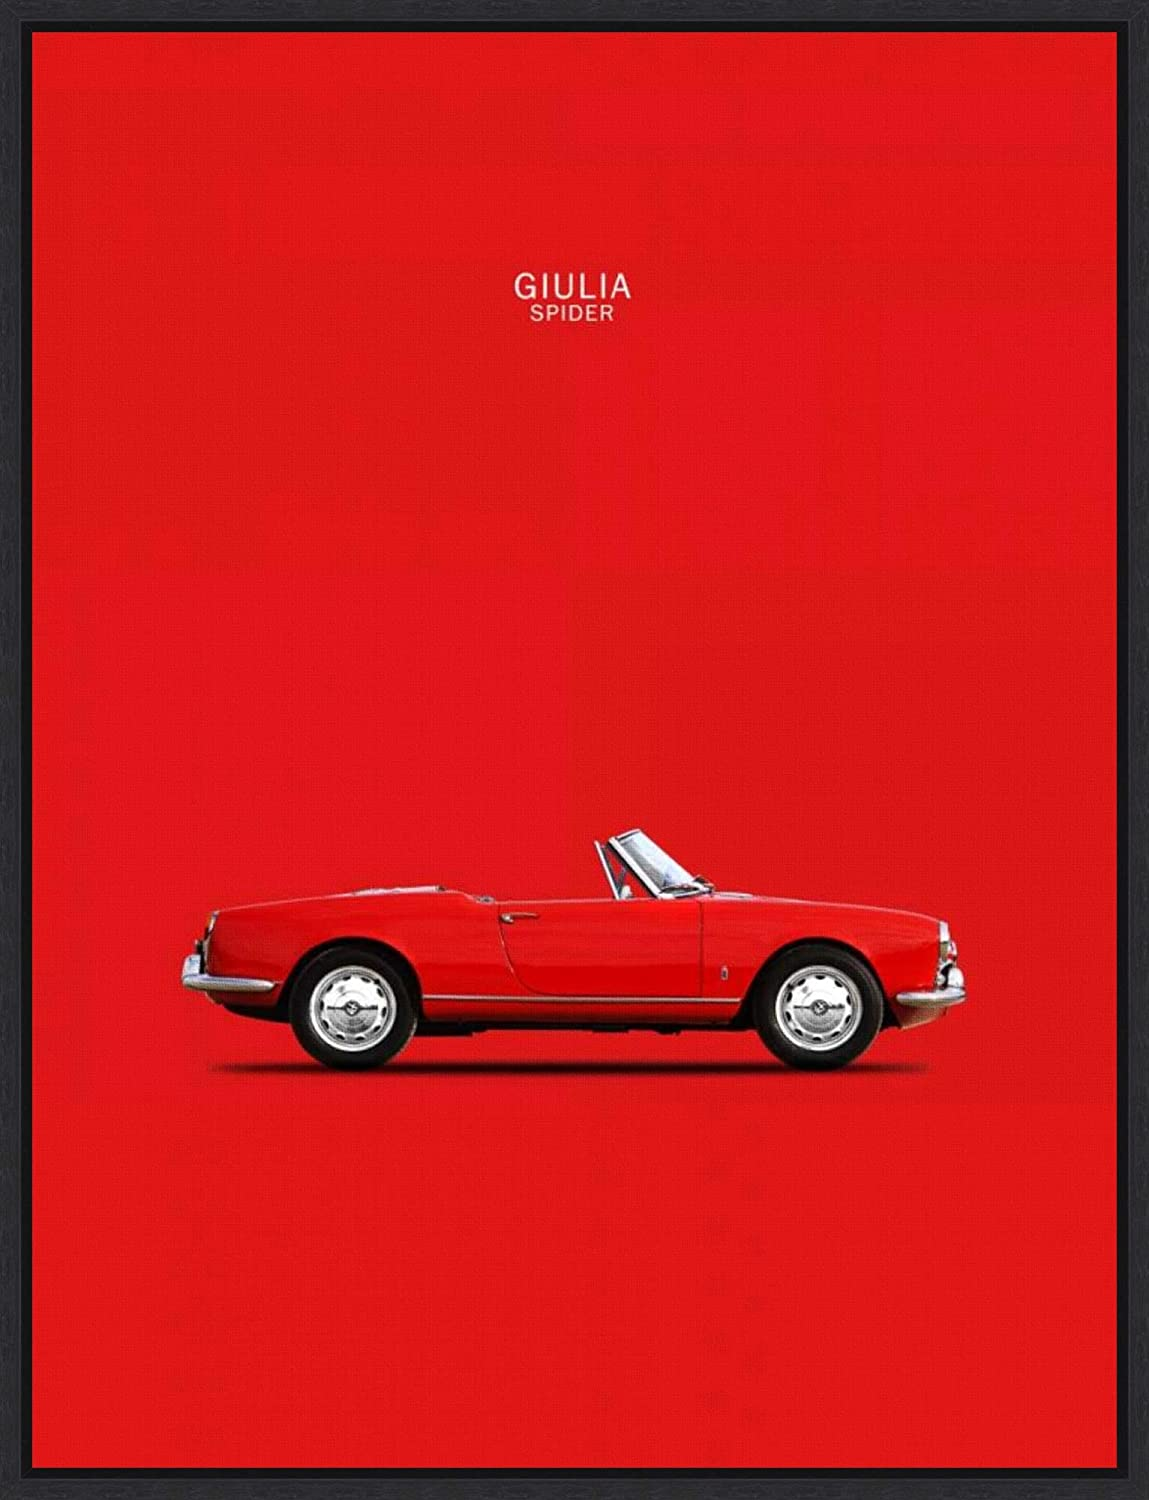 Framed Canvas Wall Art Print | Home Wall Decor Canvas Art | Alfa Romeo Giulia Spider 1964 by Mark Rogan | Modern Decor | Stretched Canvas Prints 18.00 x 23.50 in.